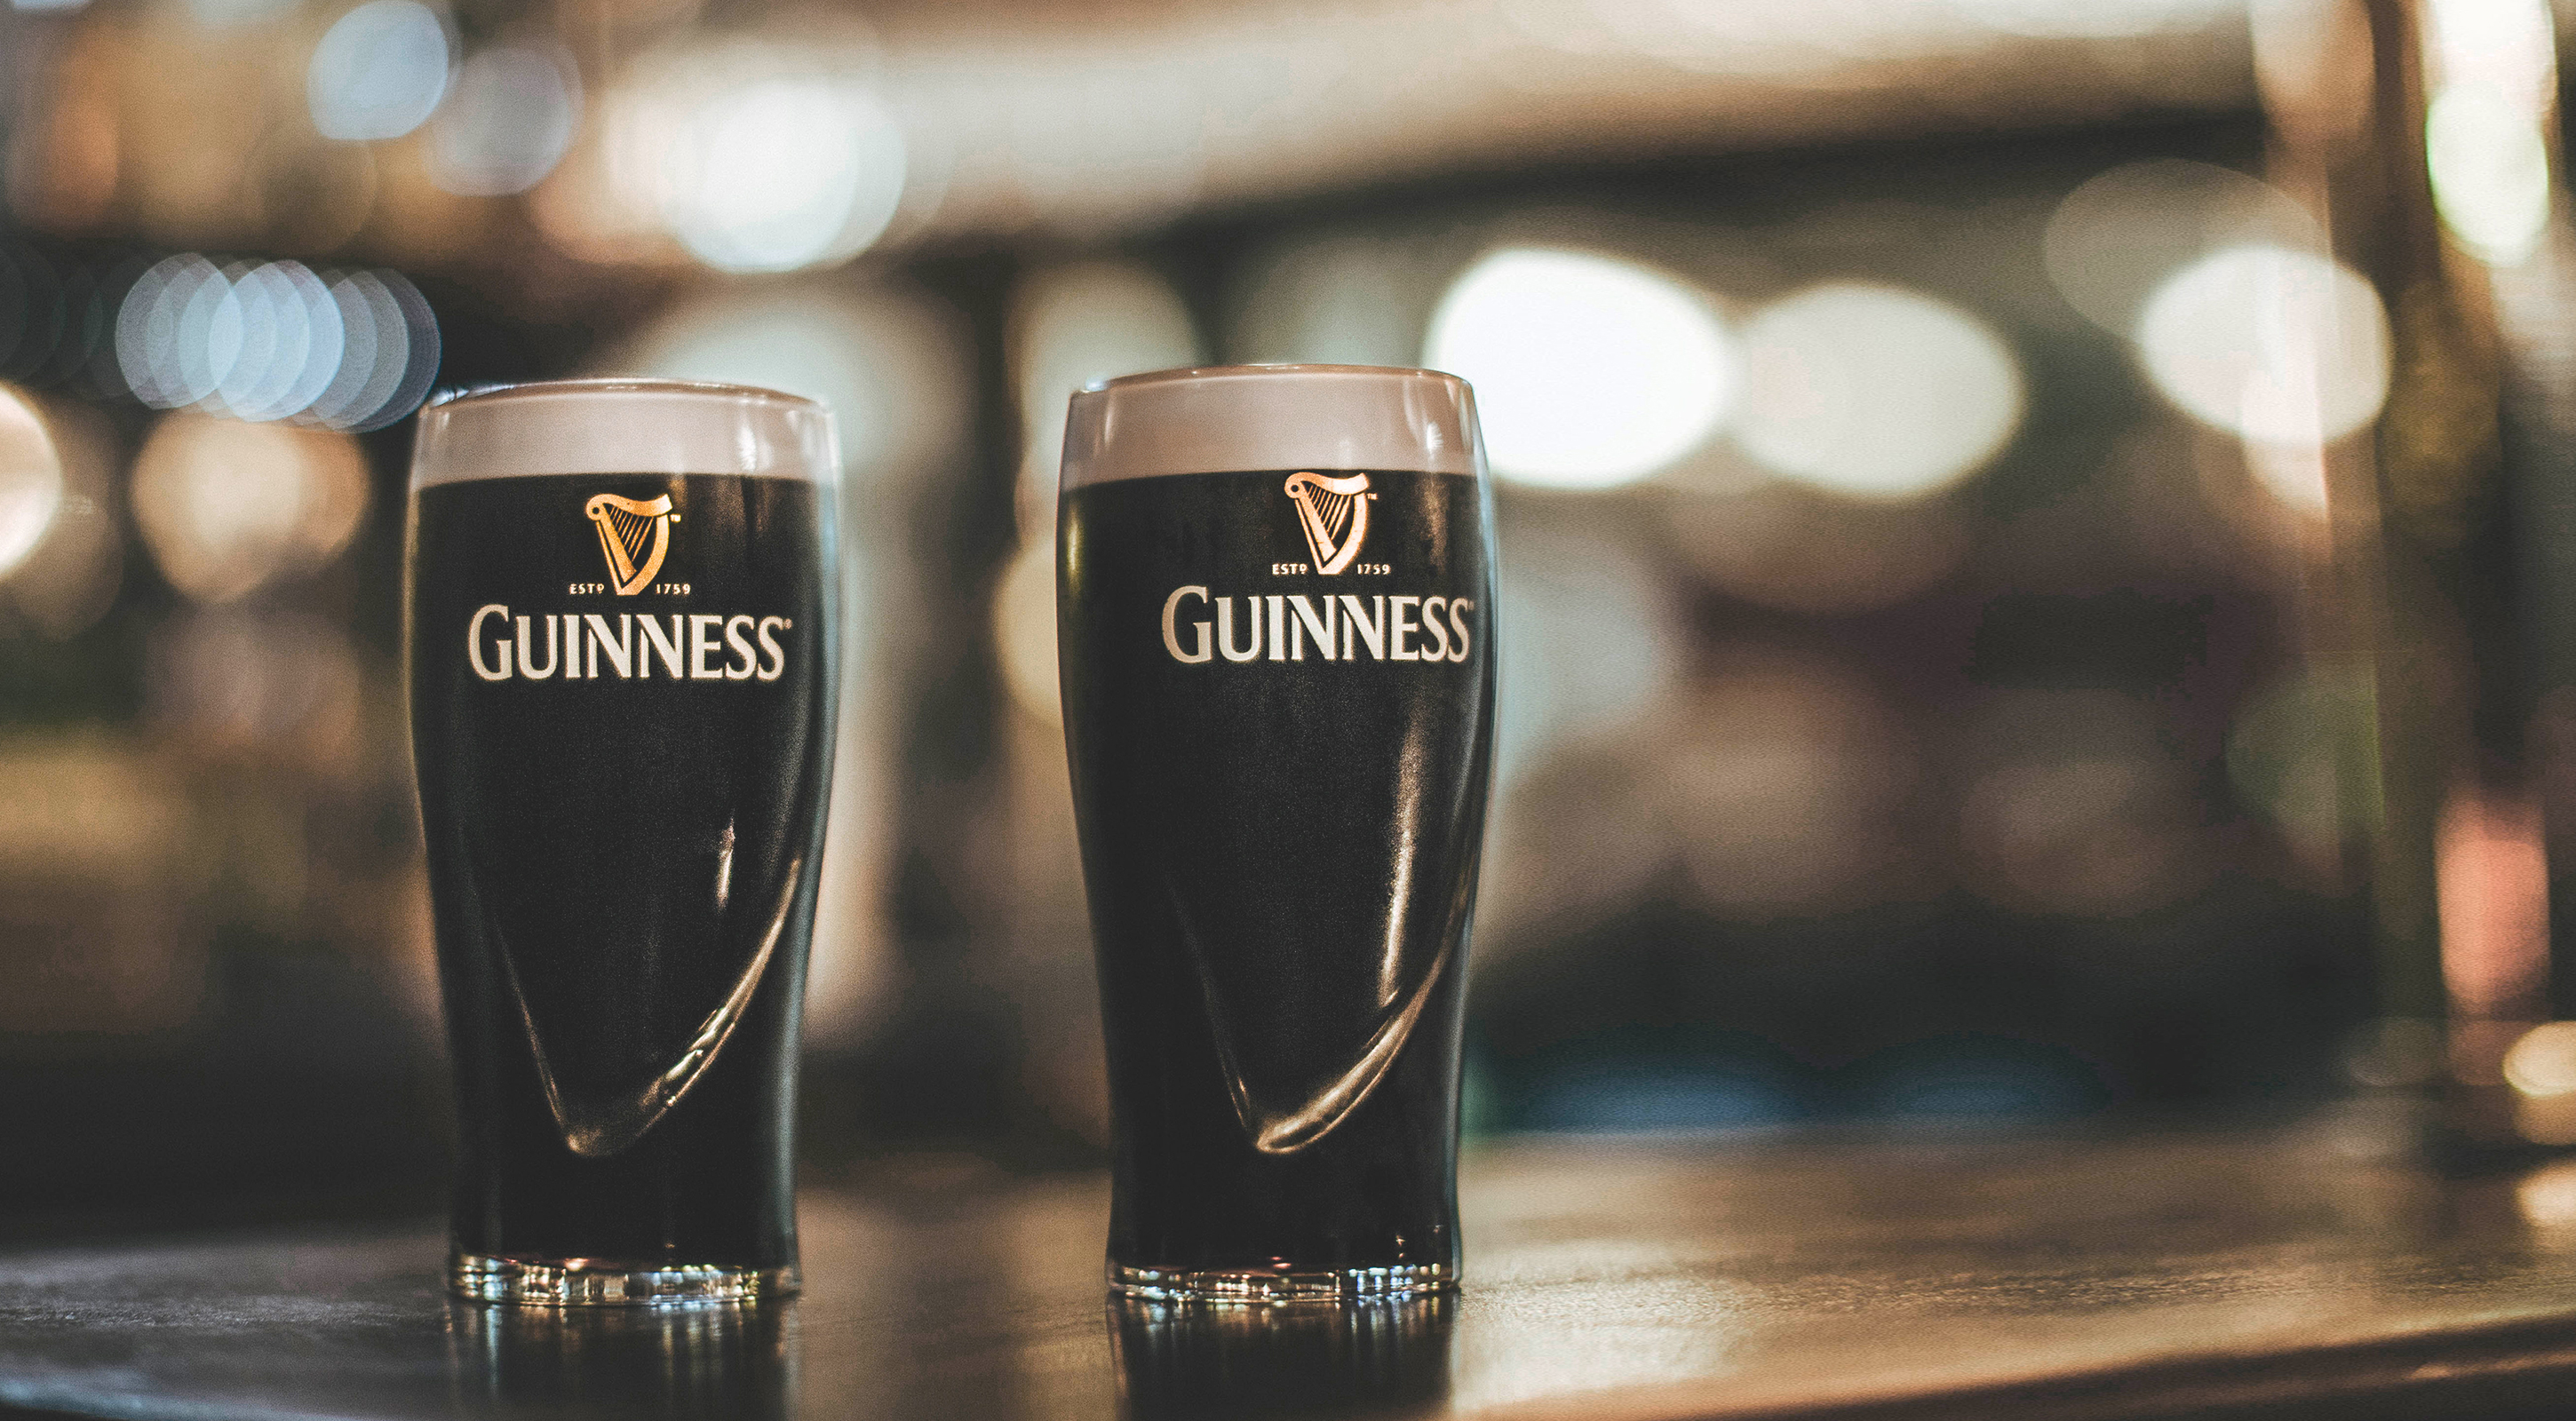 Two pints of Guinness on a bar